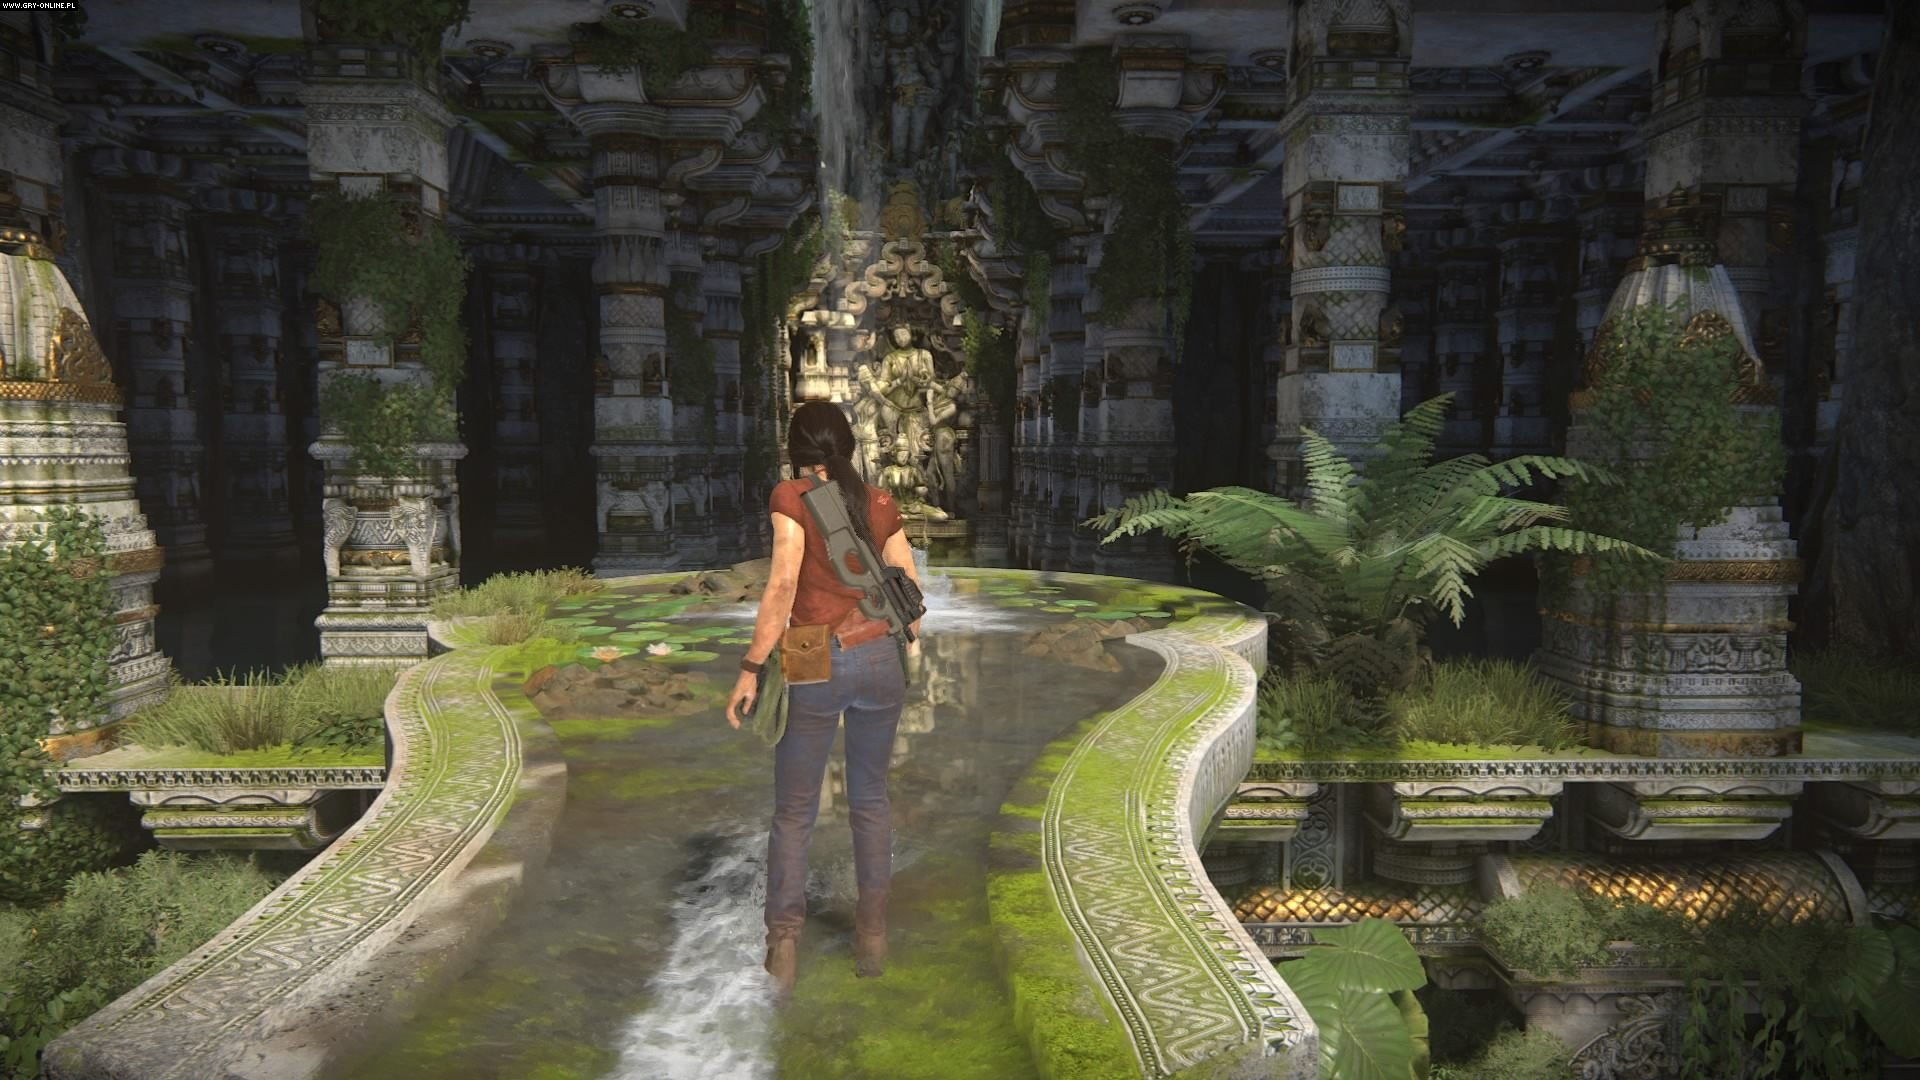 Uncharted: The Lost Legacy PS4 Games Image 6/141, Naughty Dog, Sony Interactive Entertainment